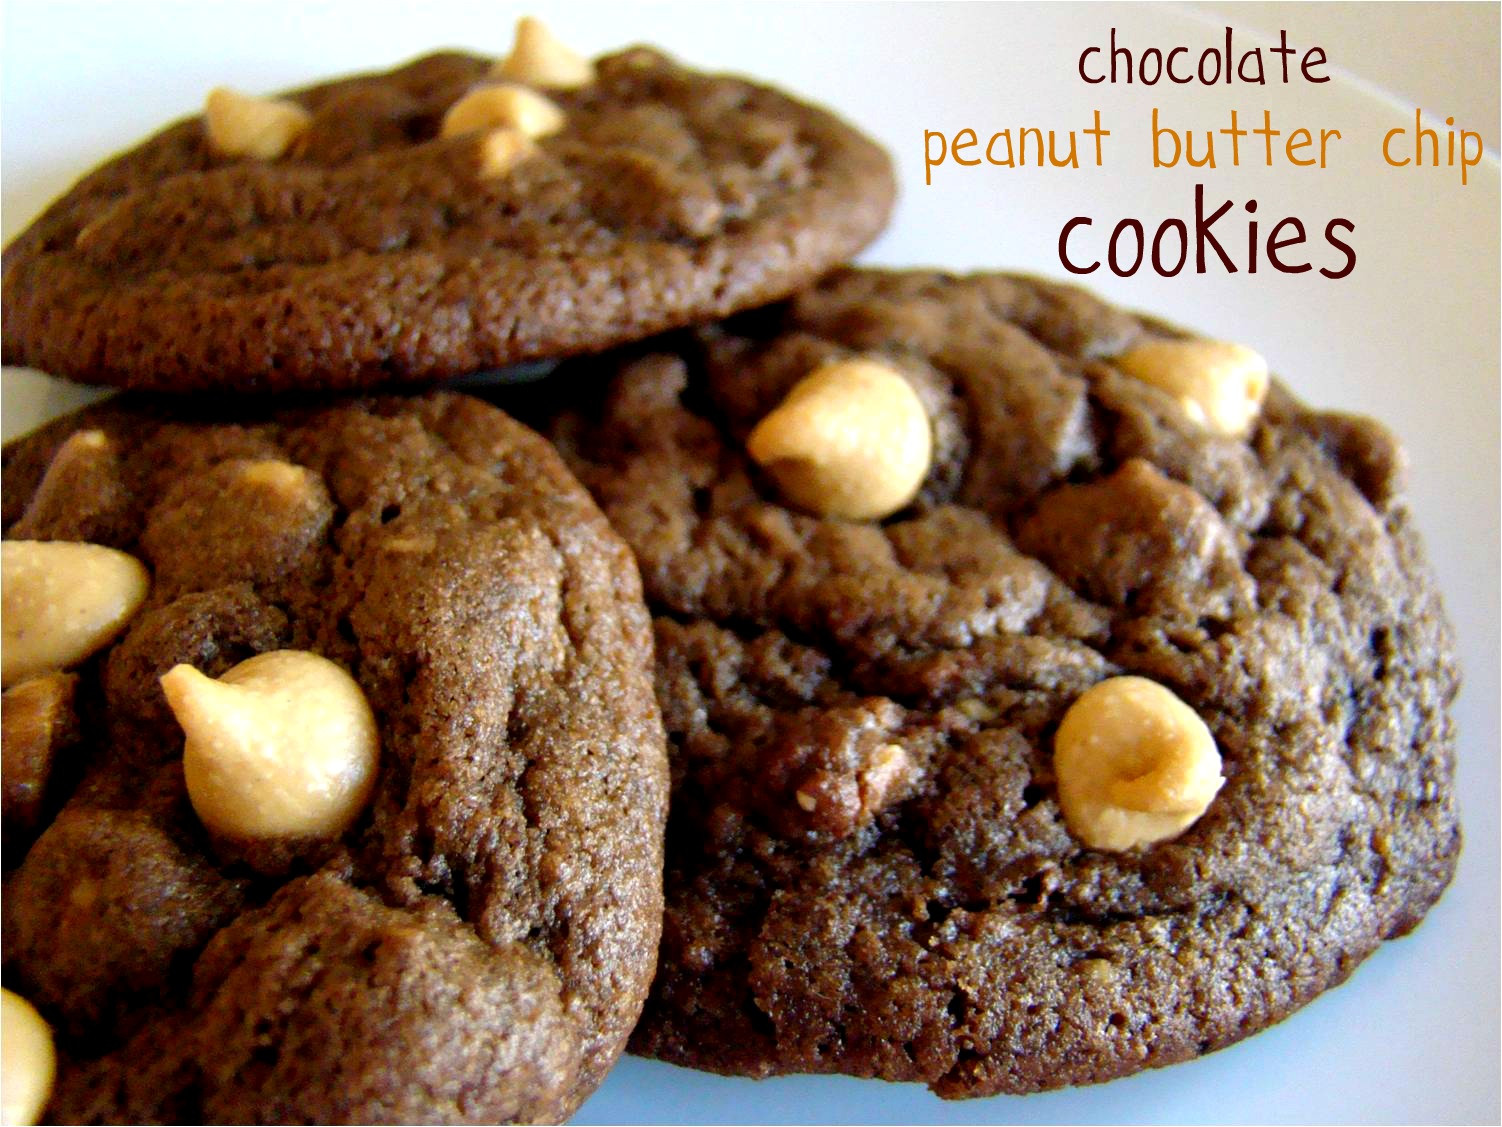 Peanut Butter Chocolate Cookies  Family Feedbag Chocolate peanut butter chip cookies